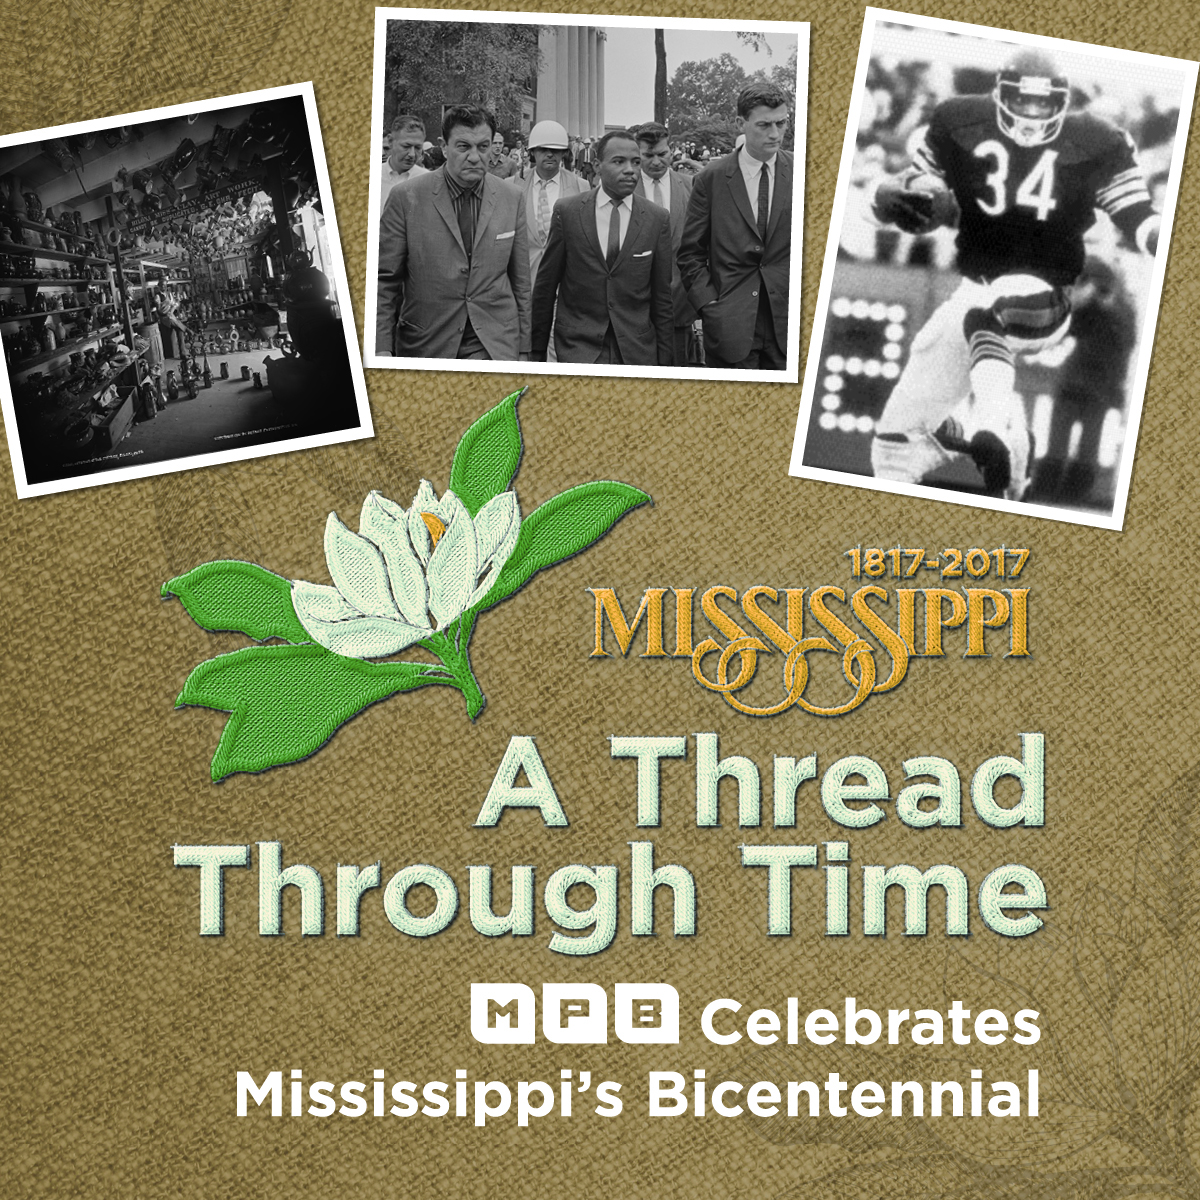 Mississippi: A Thread Through Time, MPB Celebrates the Mississippi Bicentennial.